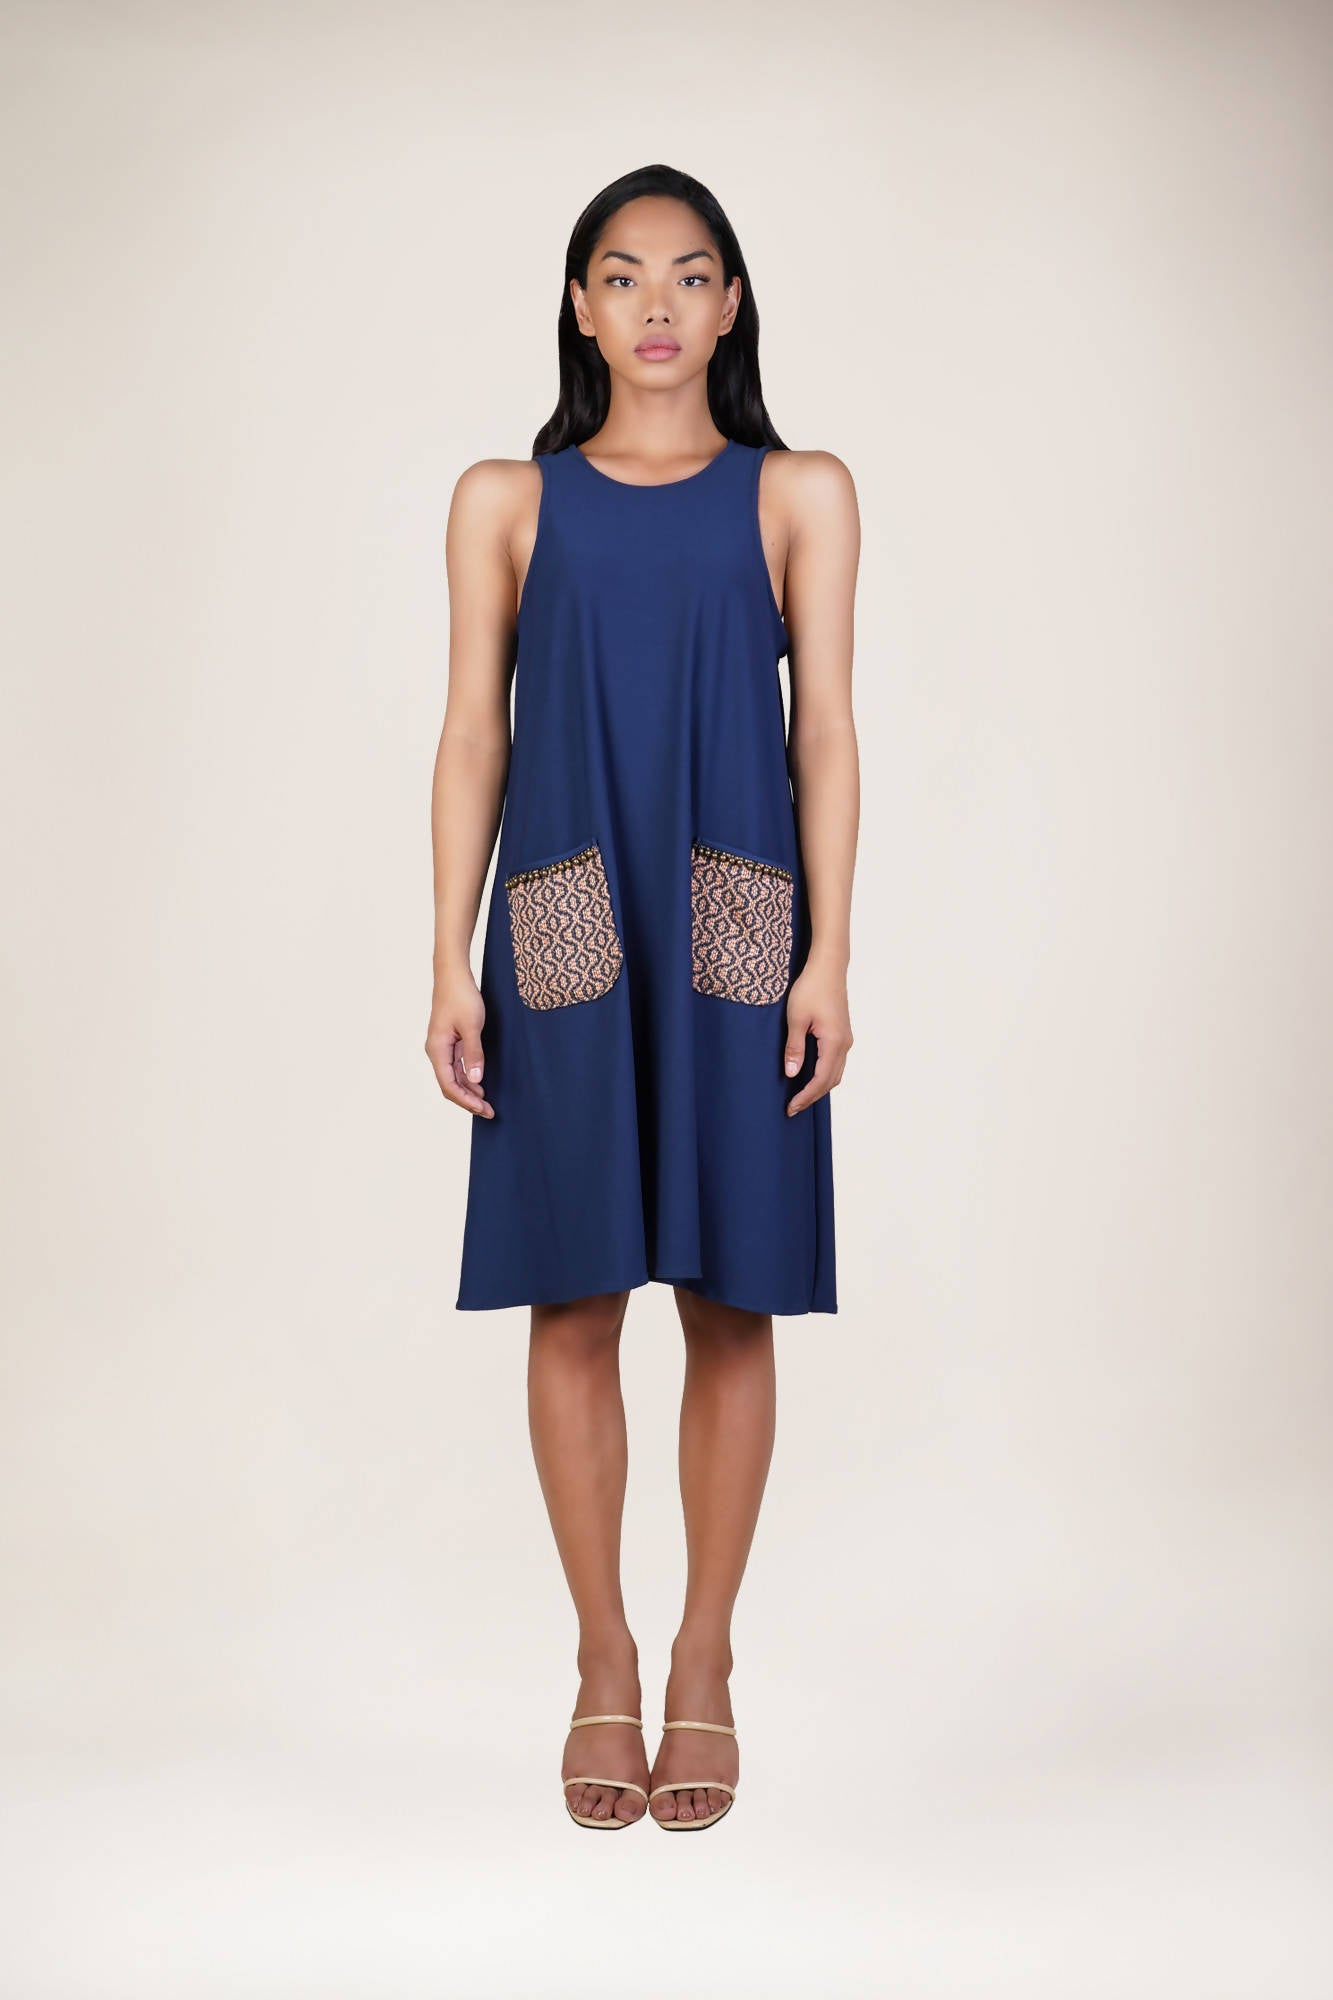 Diwata Sleeveless Dress in Blue